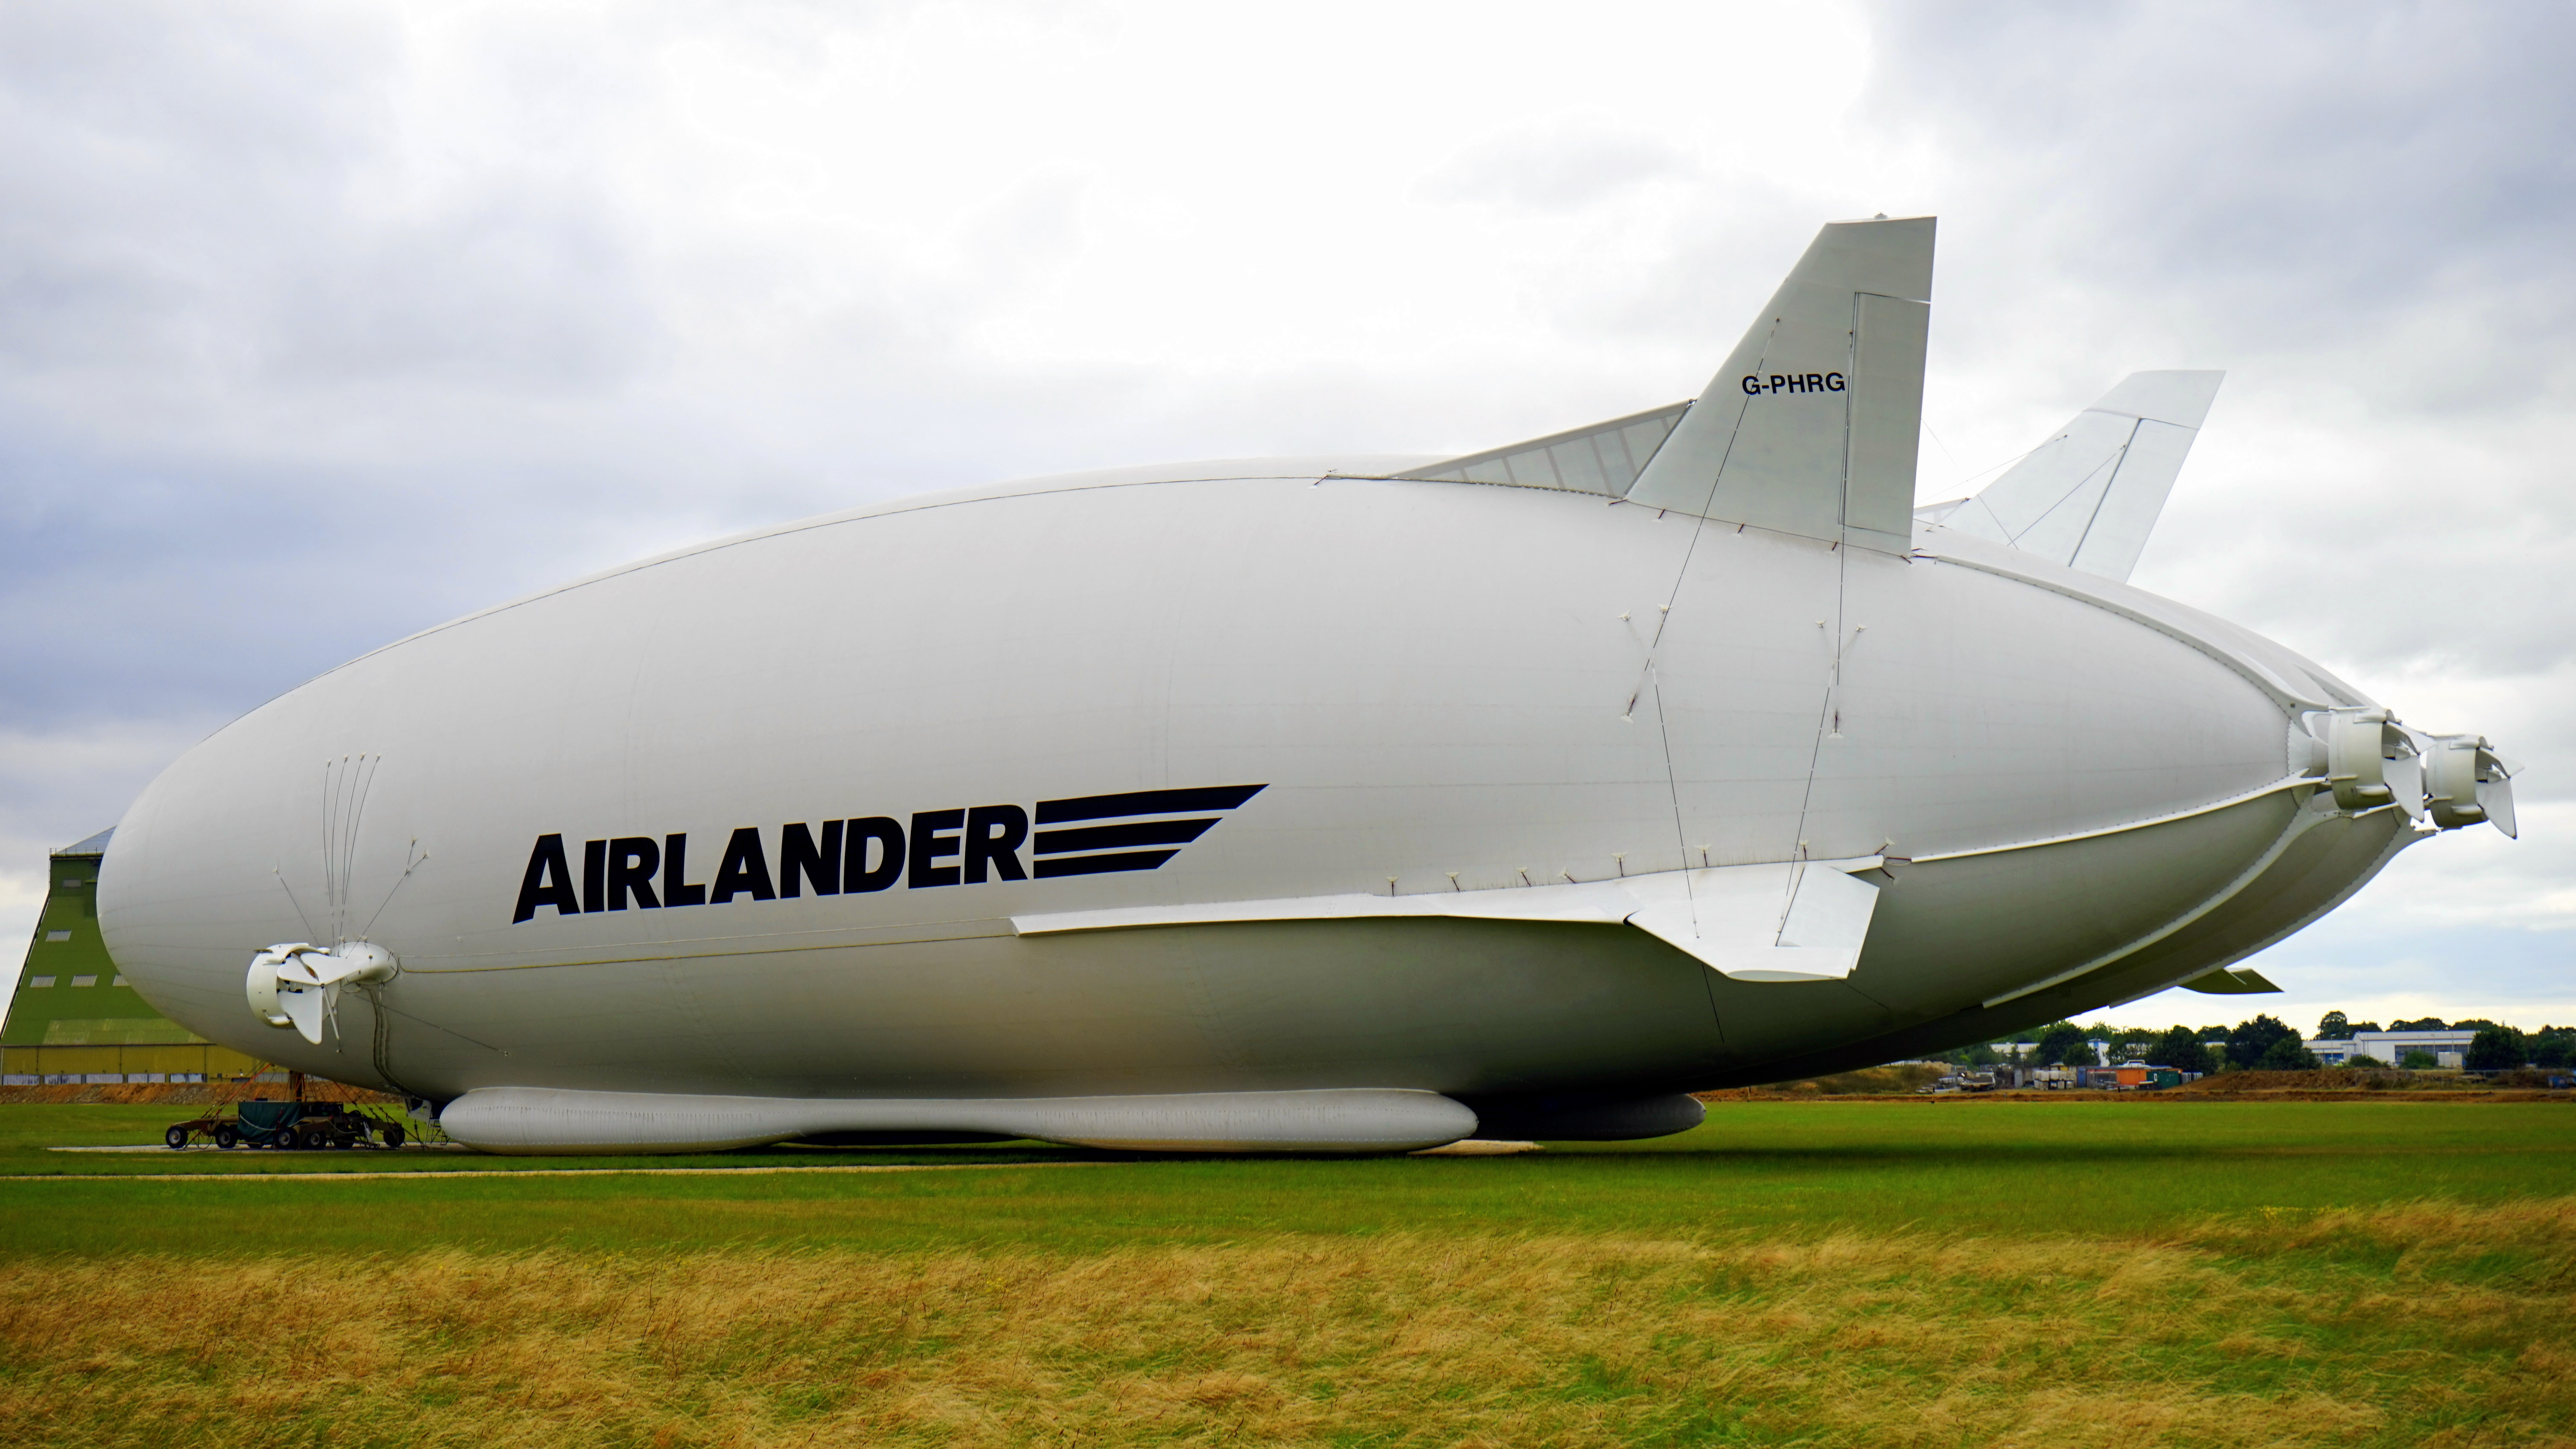 White Airlander on Green Grass